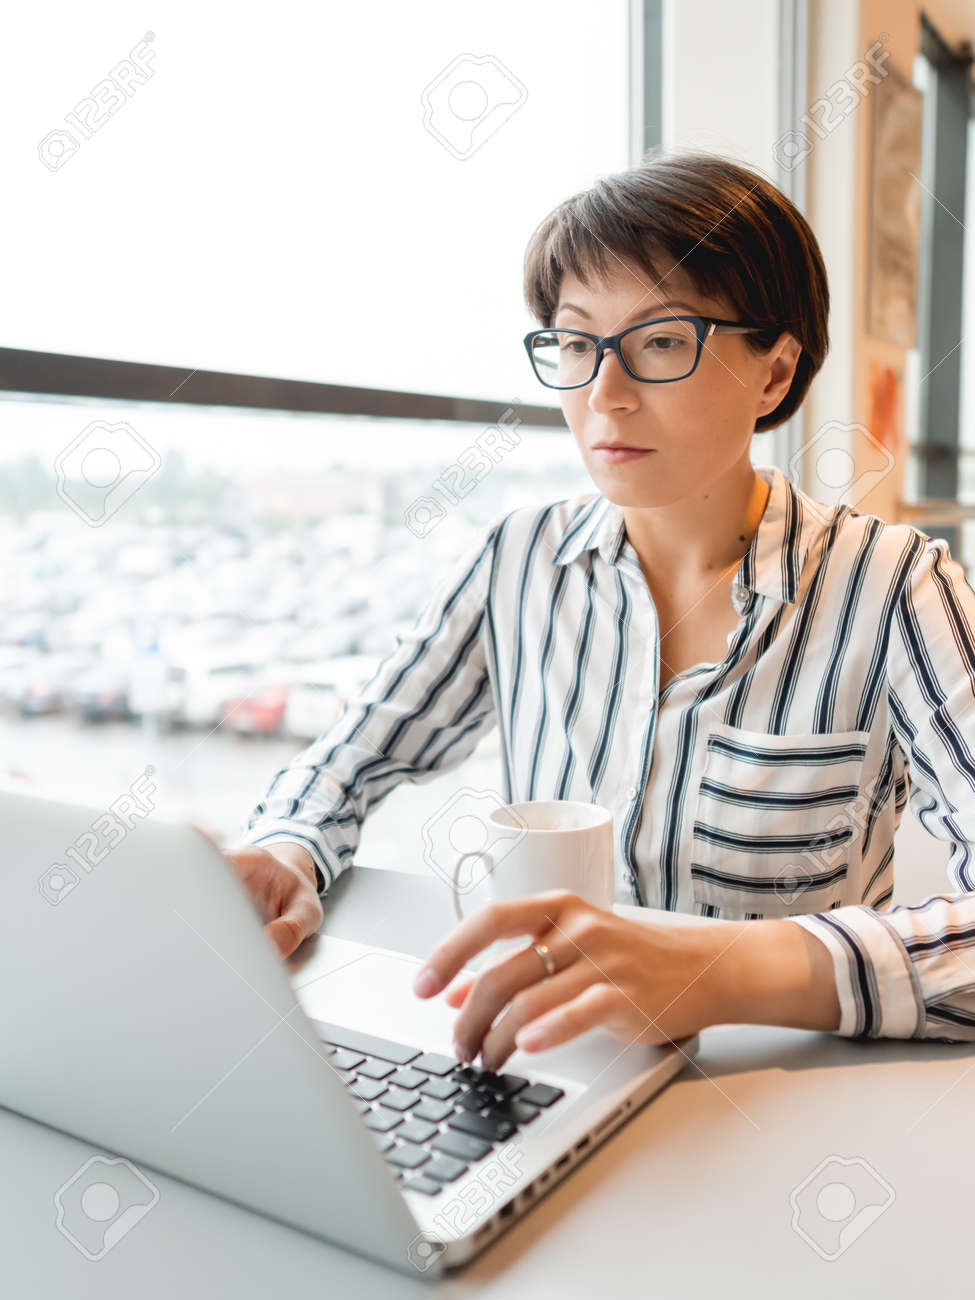 Business woman works with laptop in co-working center. Workplace for freelancers in business center. - 172806626